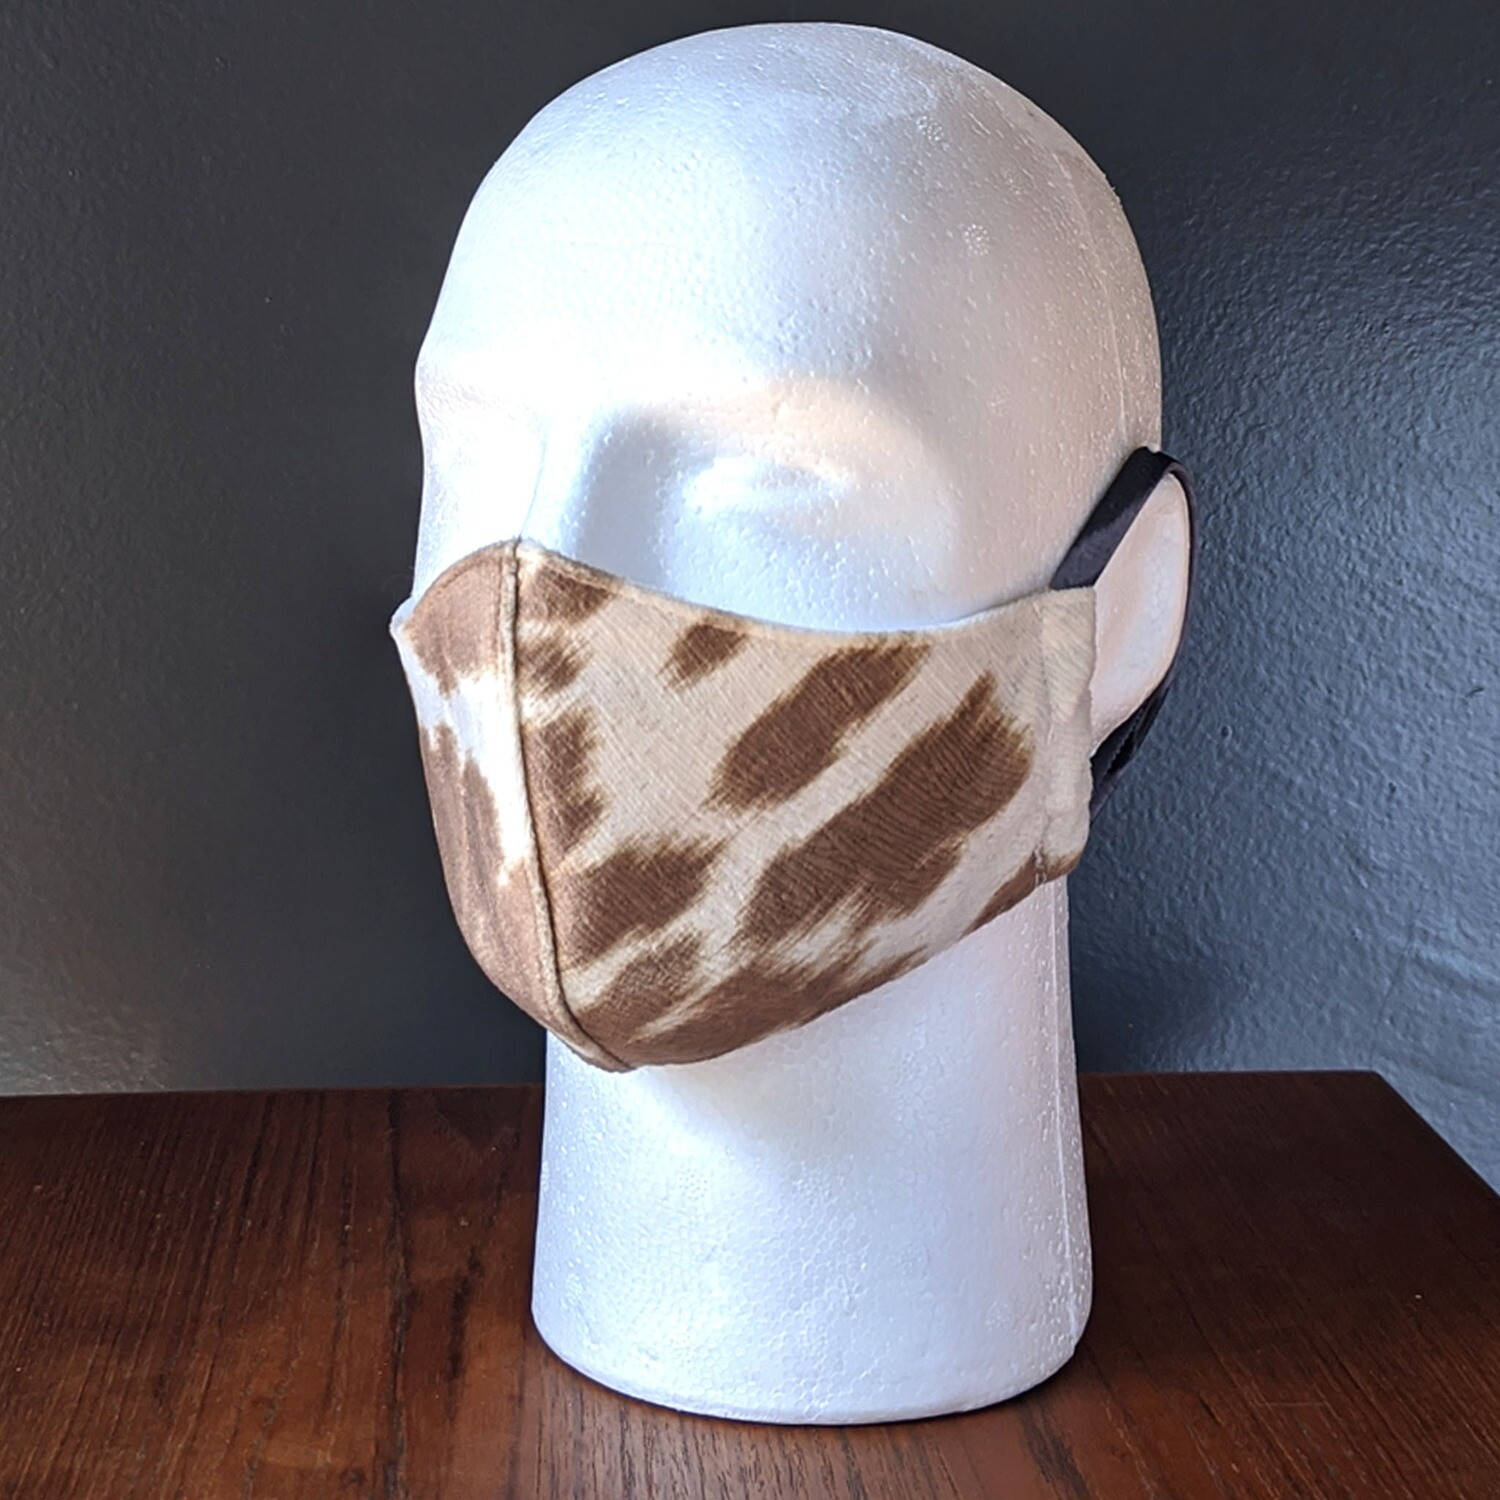 Pack of Cow Print Animal Costume Face Masks, Small, Unisex, Washable, Reusable, Double Layer for Smog, Pollen, Dust, Smoke. Made in USA